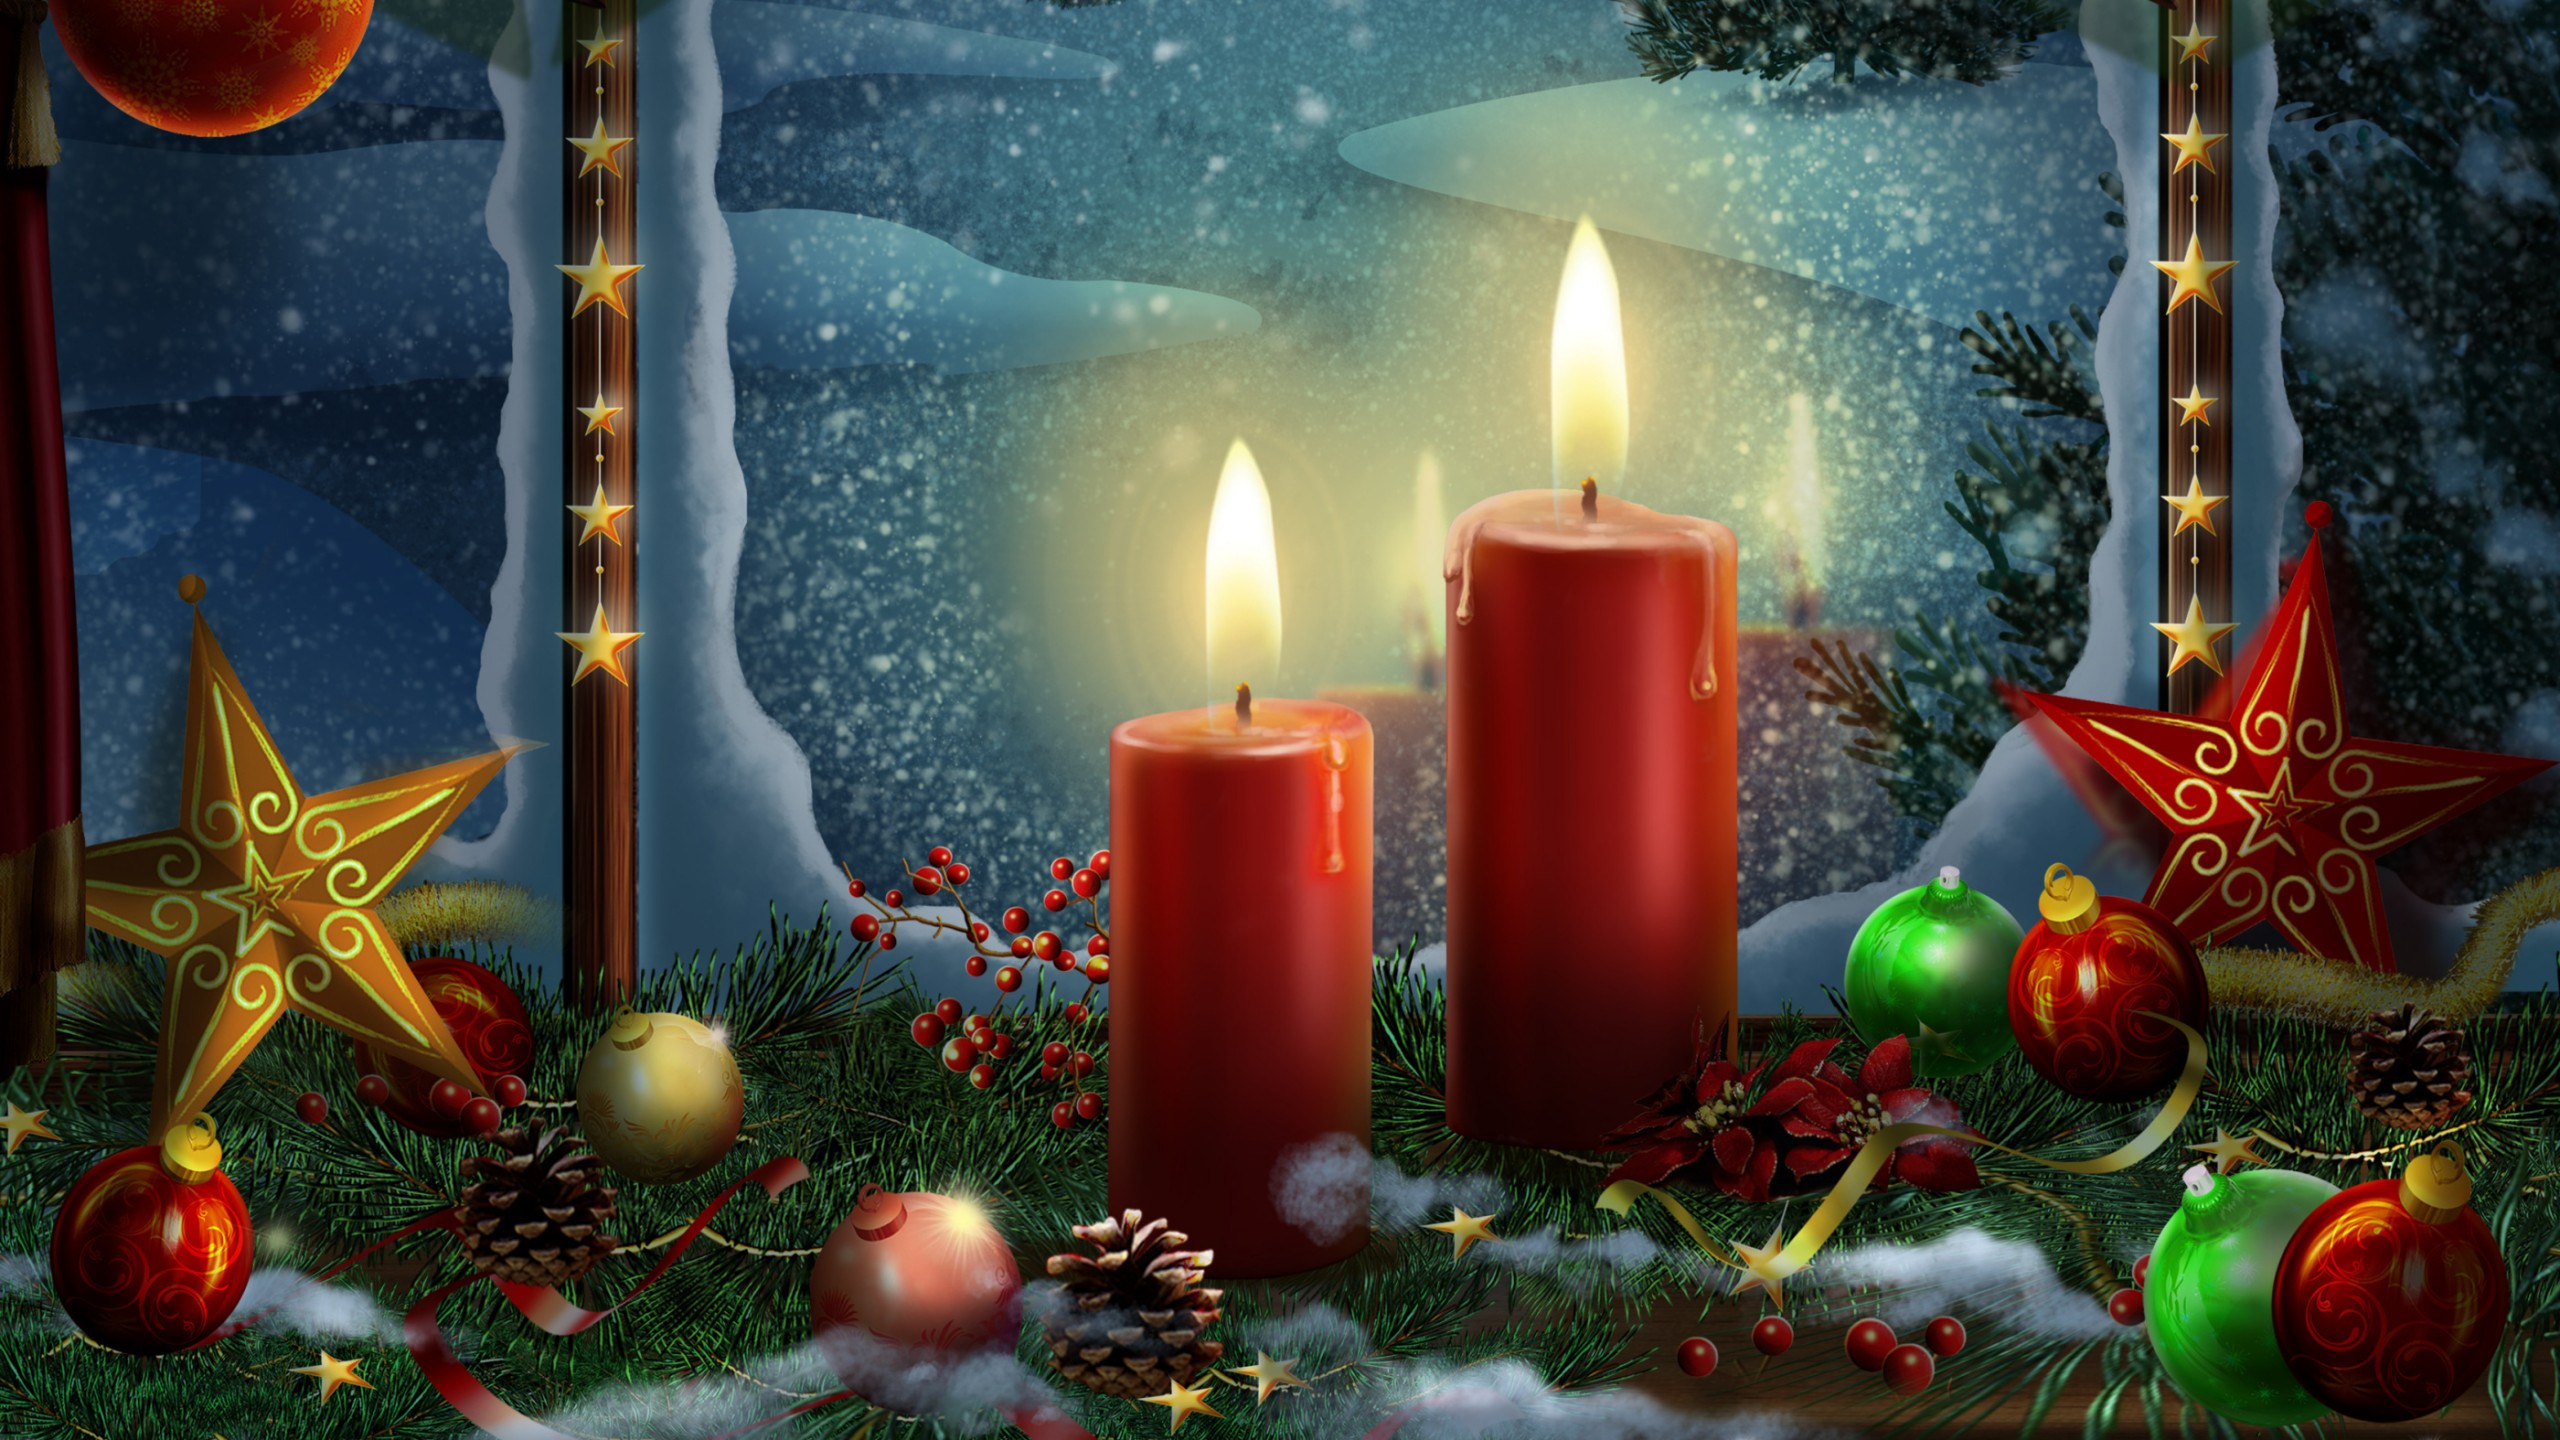 Christmas decoration candle lights Wallpaper 2560x1440